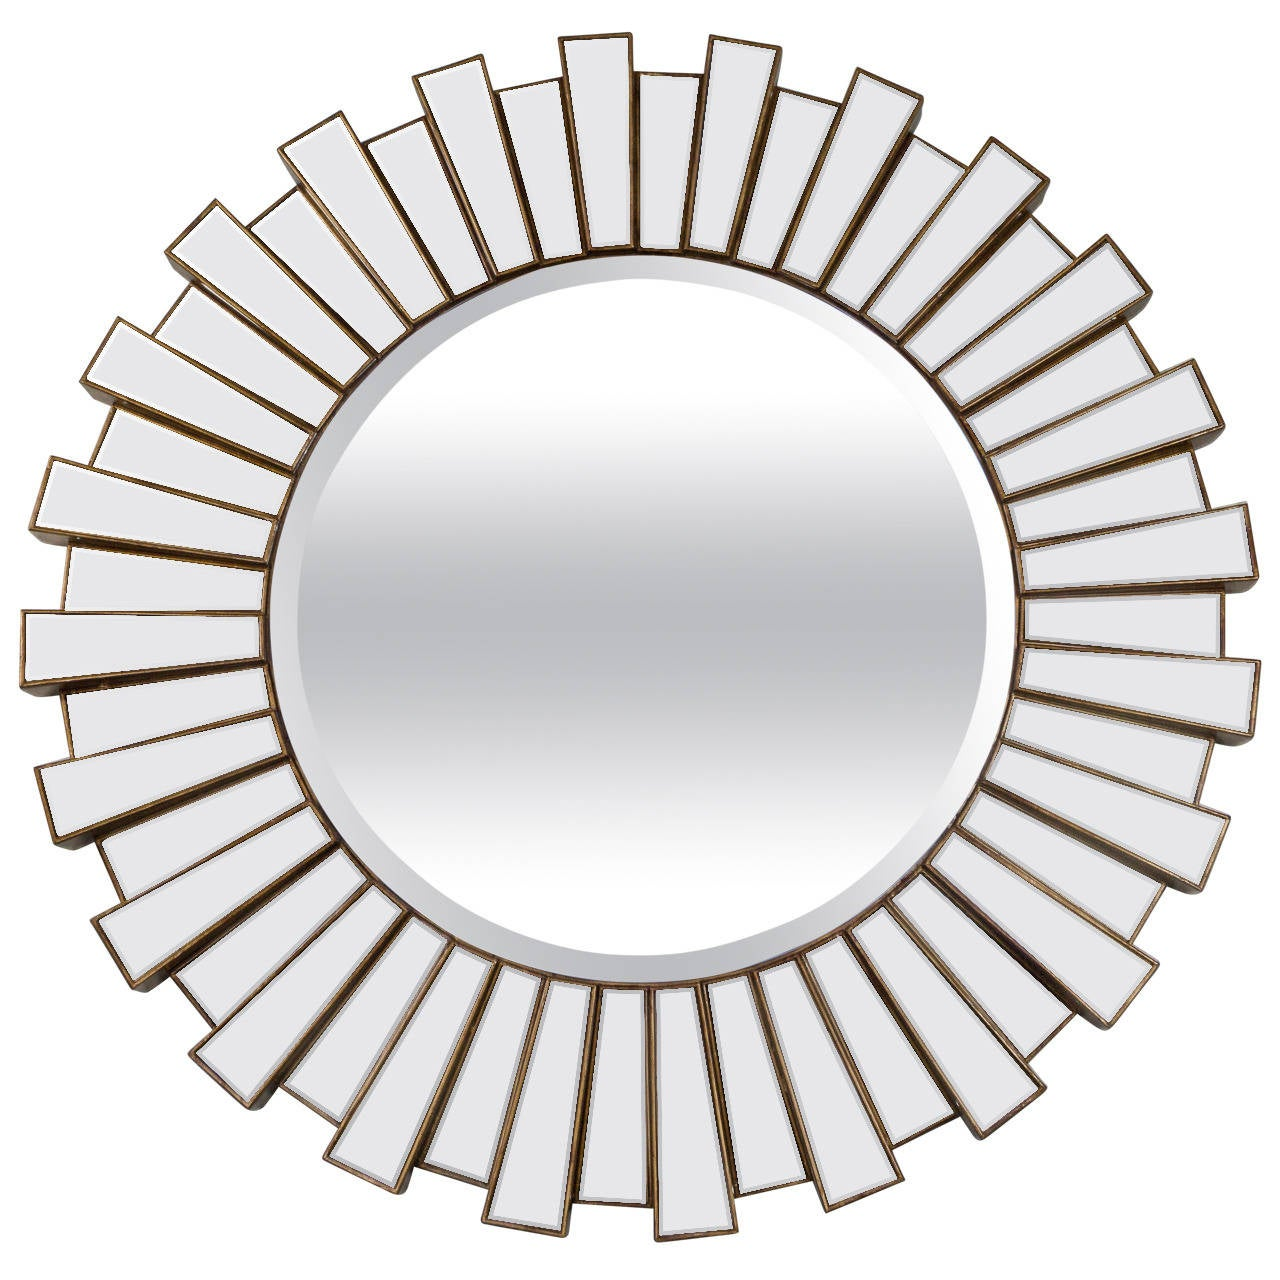 Large round sunburst bevel mirror at 1stdibs for Oversized mirror